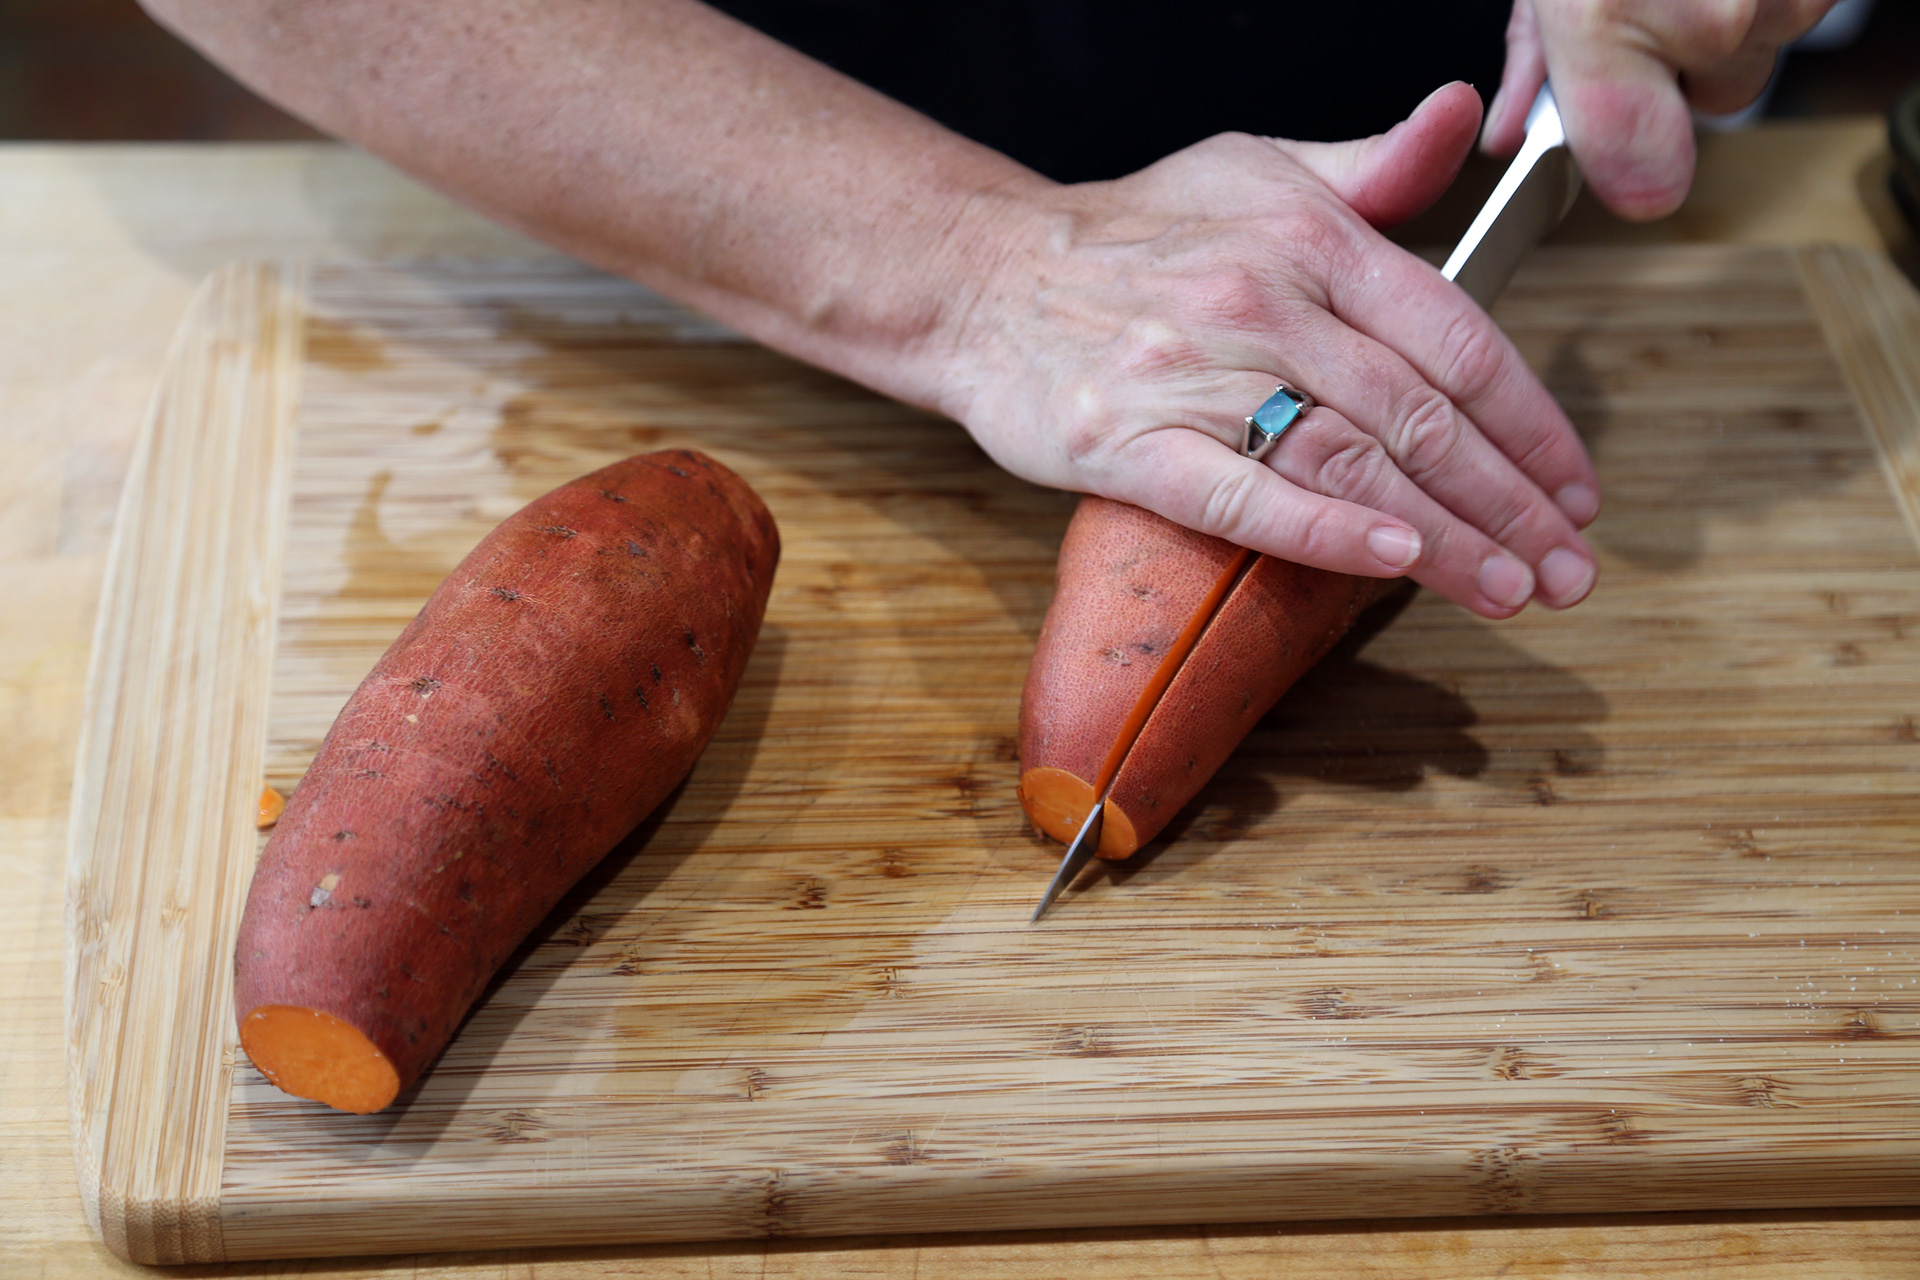 Scrub the sweet potatoes clean, then cut lengthwise in half.